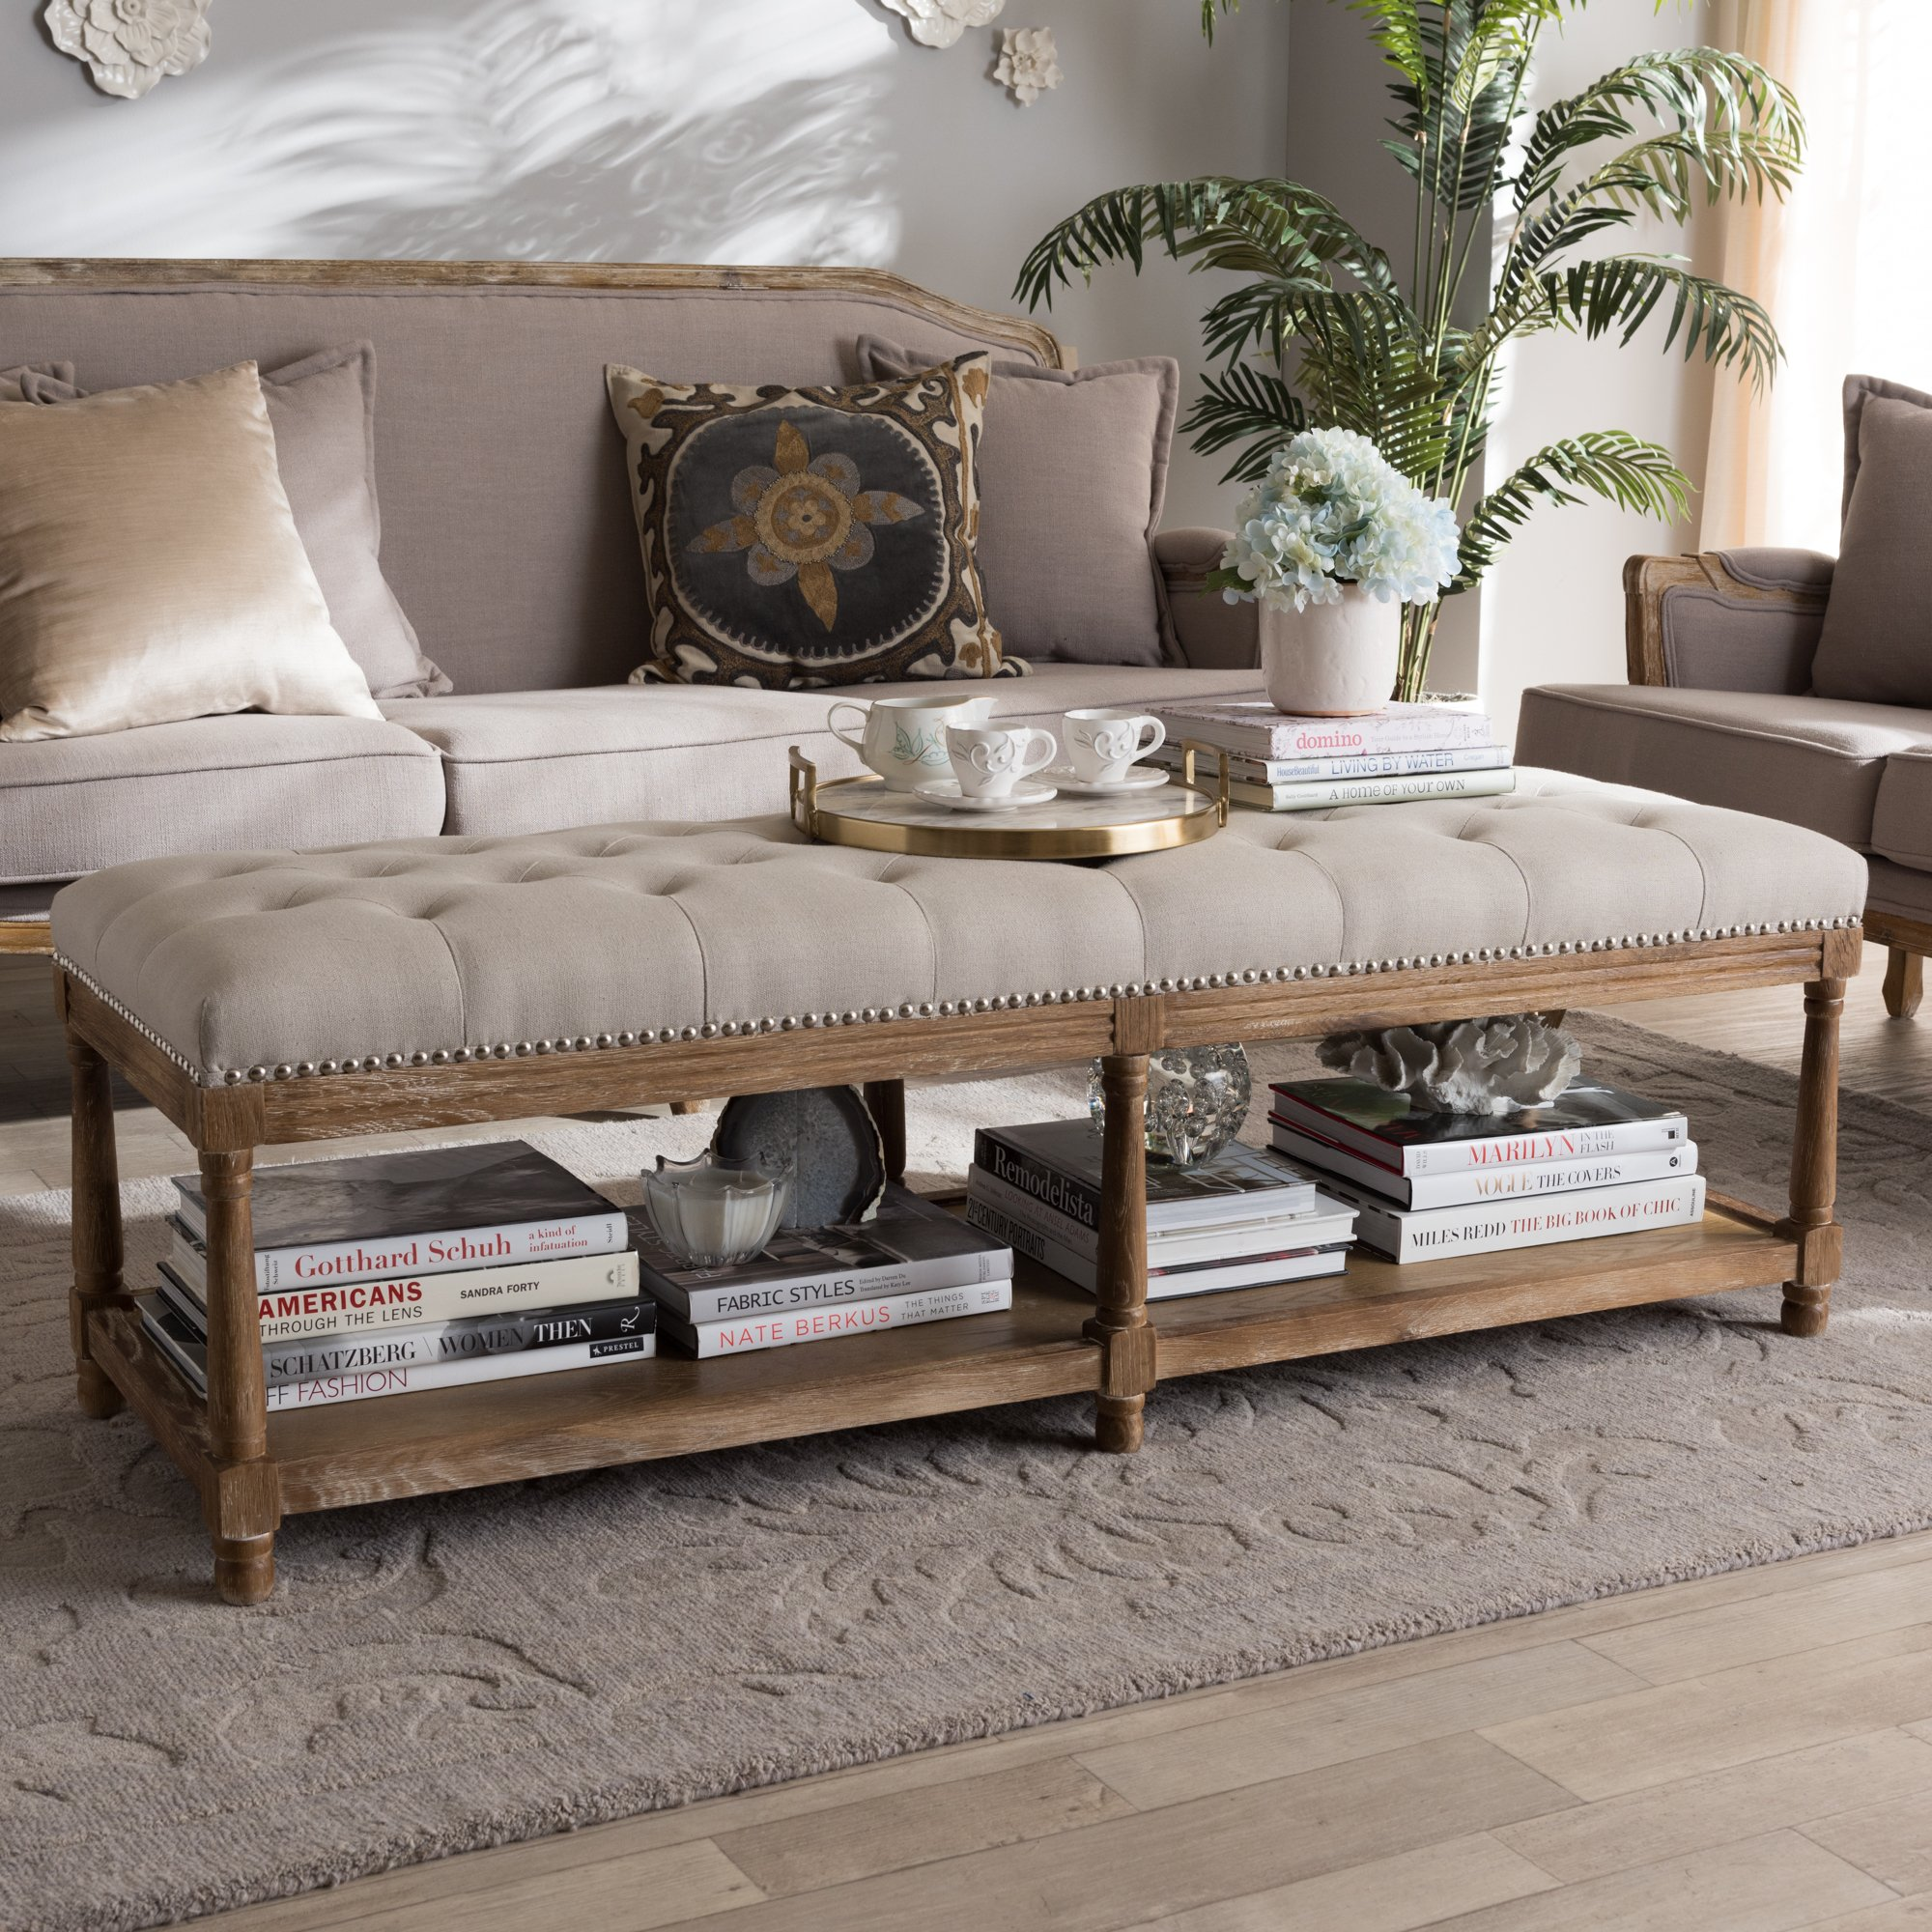 Baxton Studio Upholstered Ottoman Bench in Beige and Weathered Oak Finish by Baxton Studio